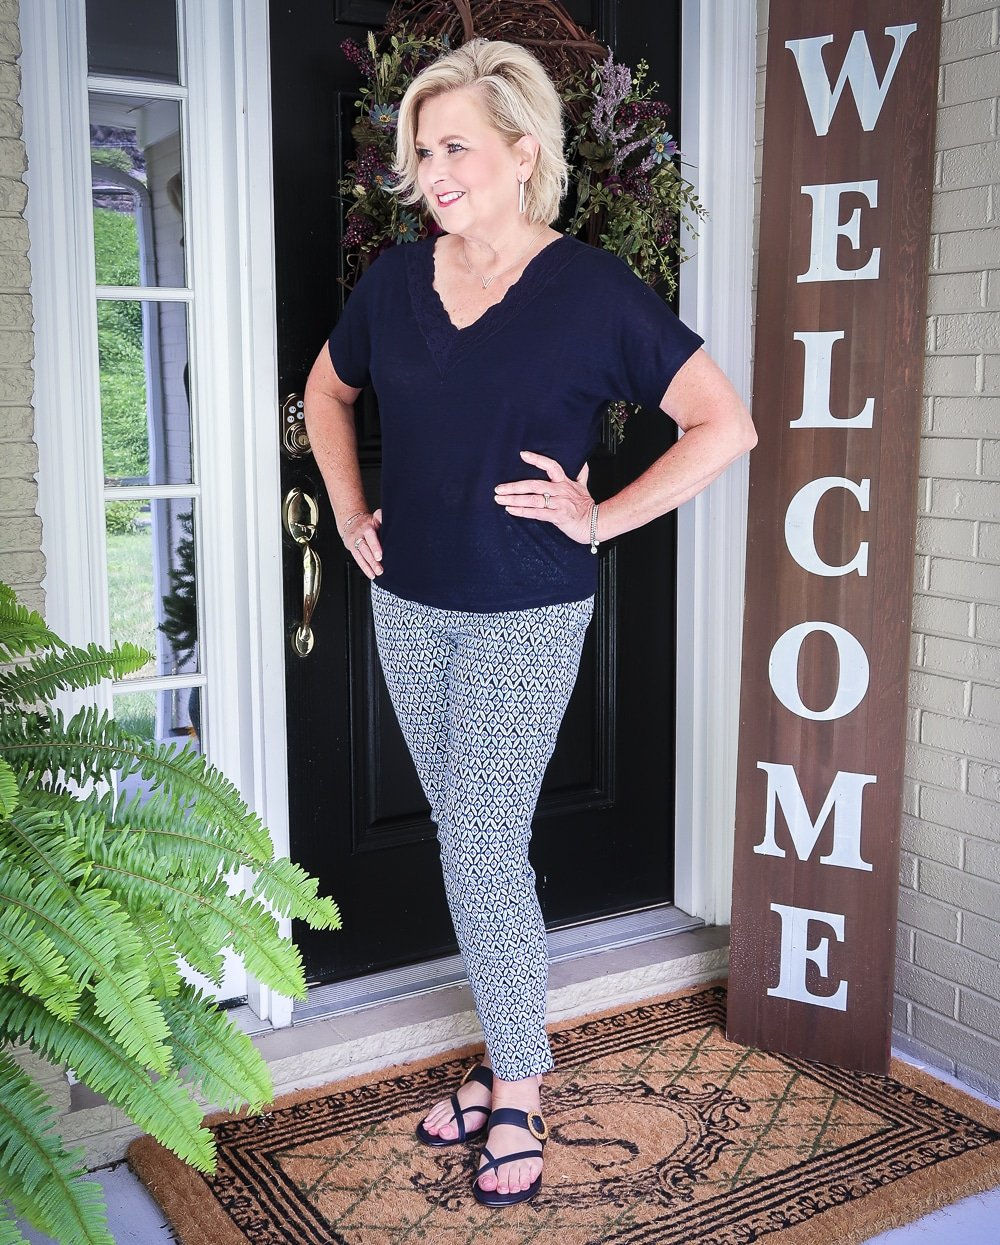 Fashion Blogger 50 Is Not Old is looking away and wearing a dark navy linen top with a lace neckline and printed ankle pants with navy sandals